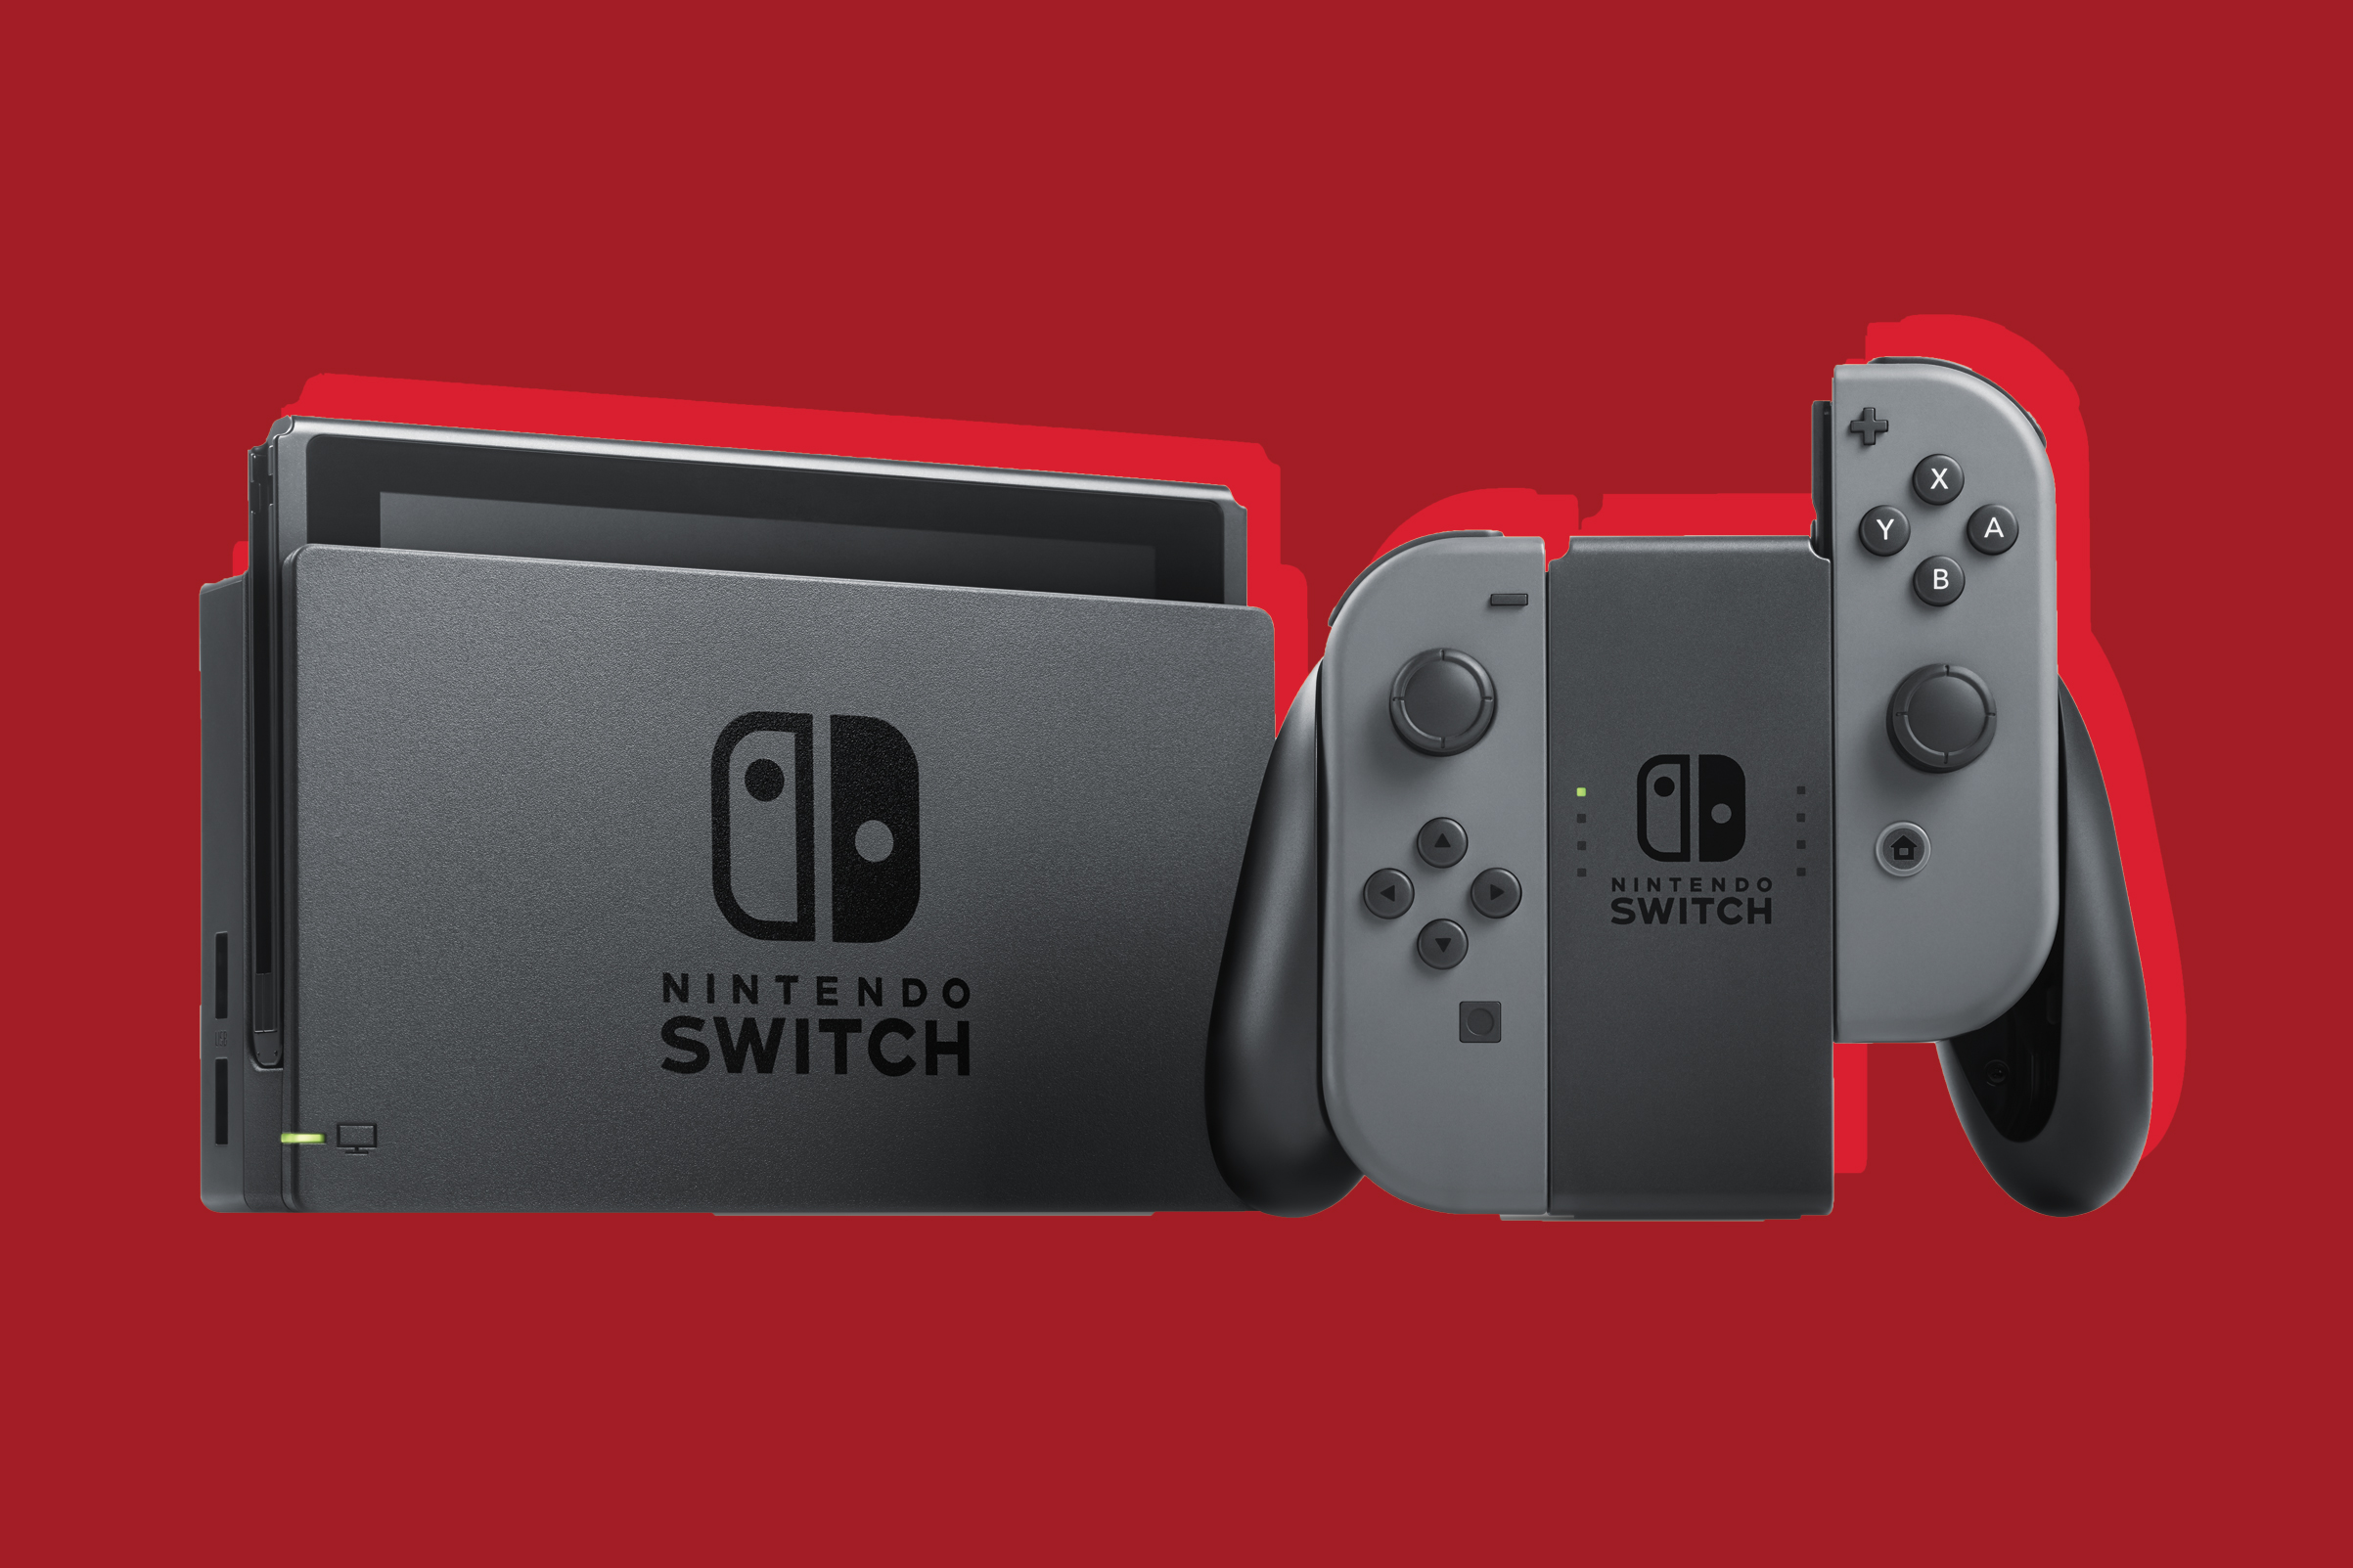 The Nintendo Switch is one of the best inventions of 2017